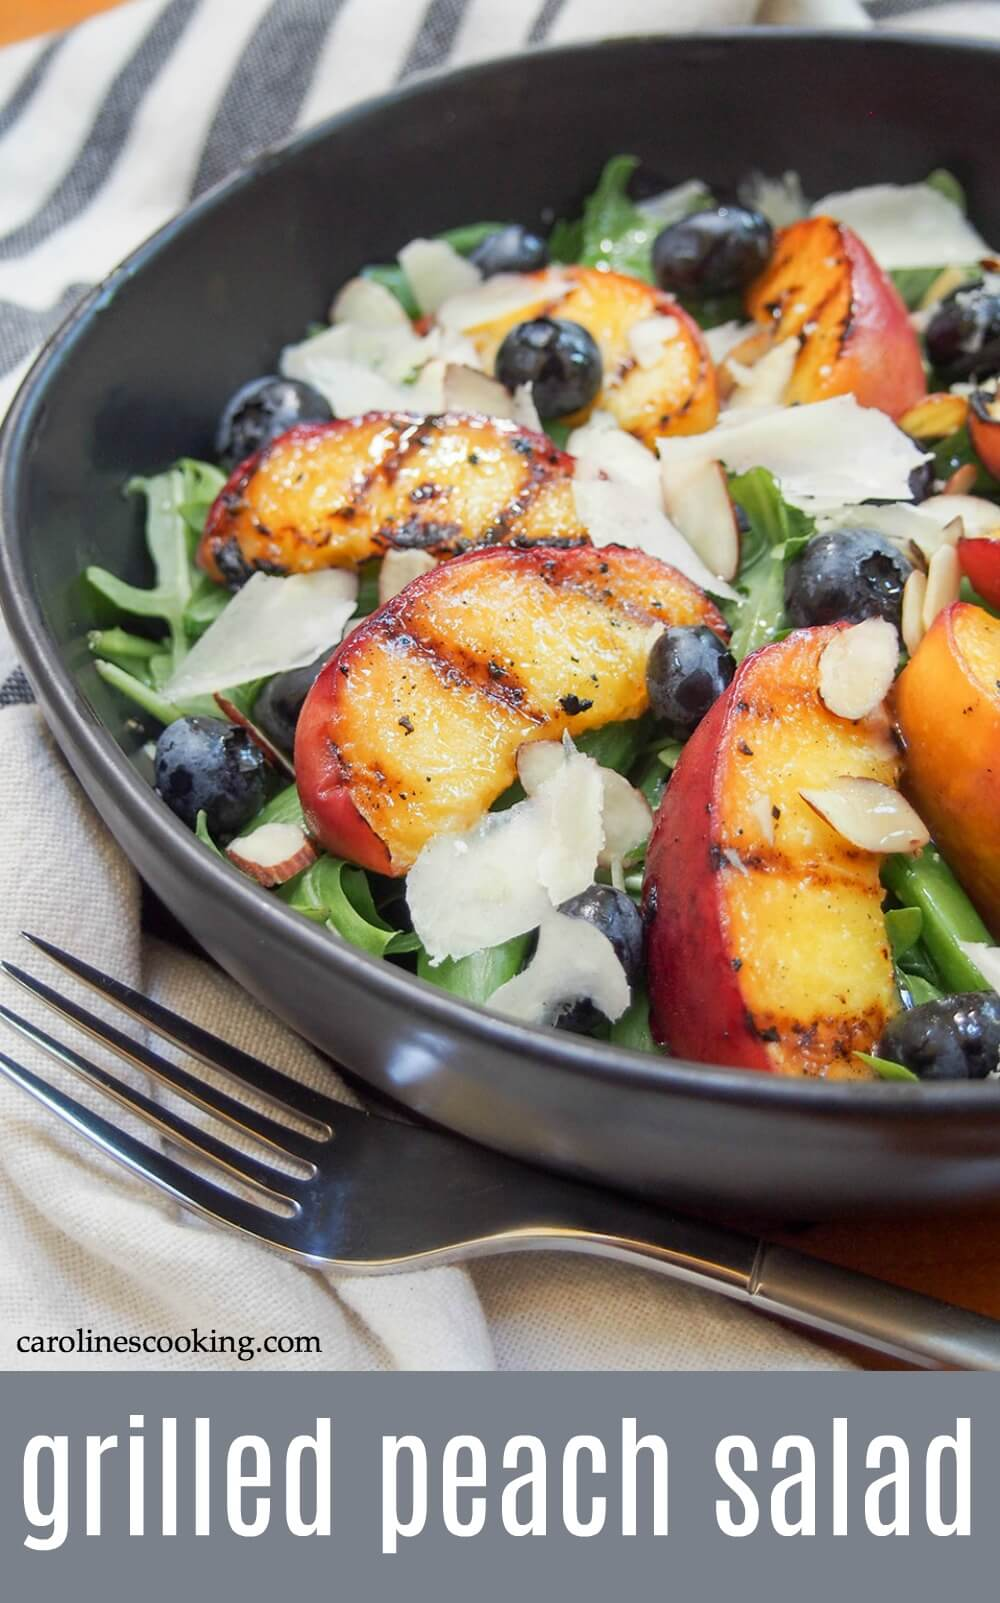 This grilled peach salad has a little sweet, a little savory, tender fruit and crunchy veg. Grilling peaches really brings out their flavor, and while they make a great dessert, they're also perfect as part of a salad. This simple combination takes no time to put together and is colorful and tasty, plus easily made vegan. A delicious, light and easy summer salad that's perfect for lunch or as a side. #summersalad #grilledpeach #vegetarian